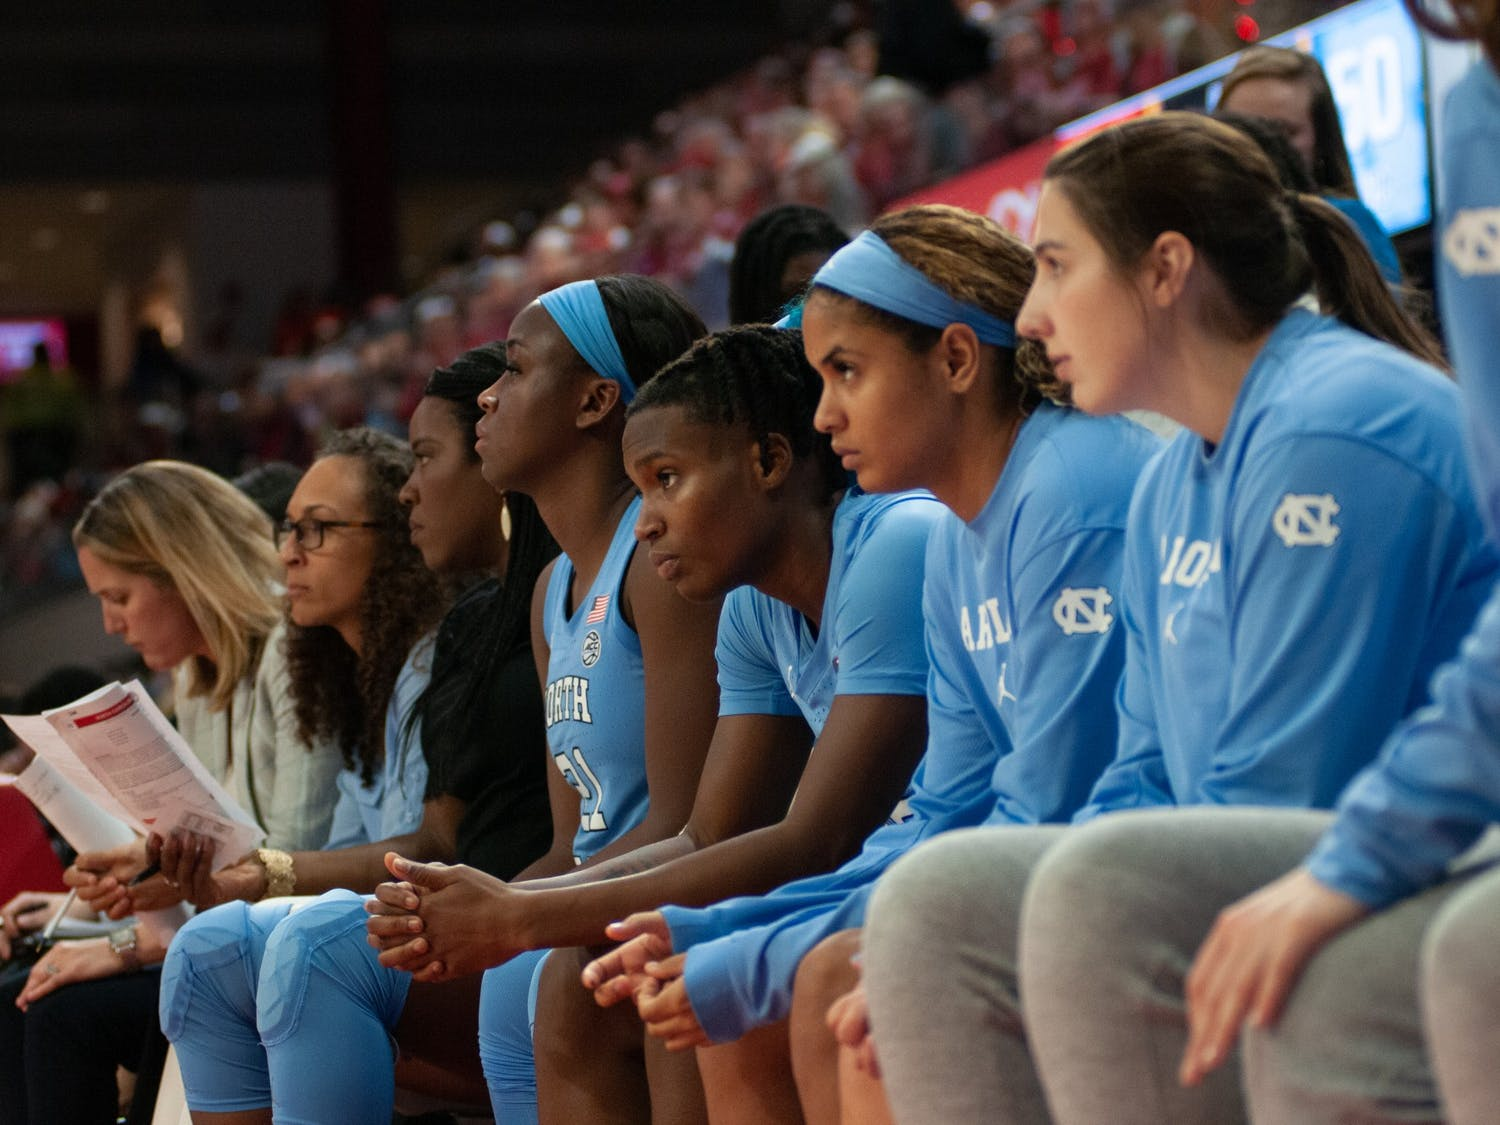 UNC players on the bench watch the game in worry at N.C. State's Reynolds Coliseum on Sunday, Jan. 26, 2020. UNC eventually lost 68-76.